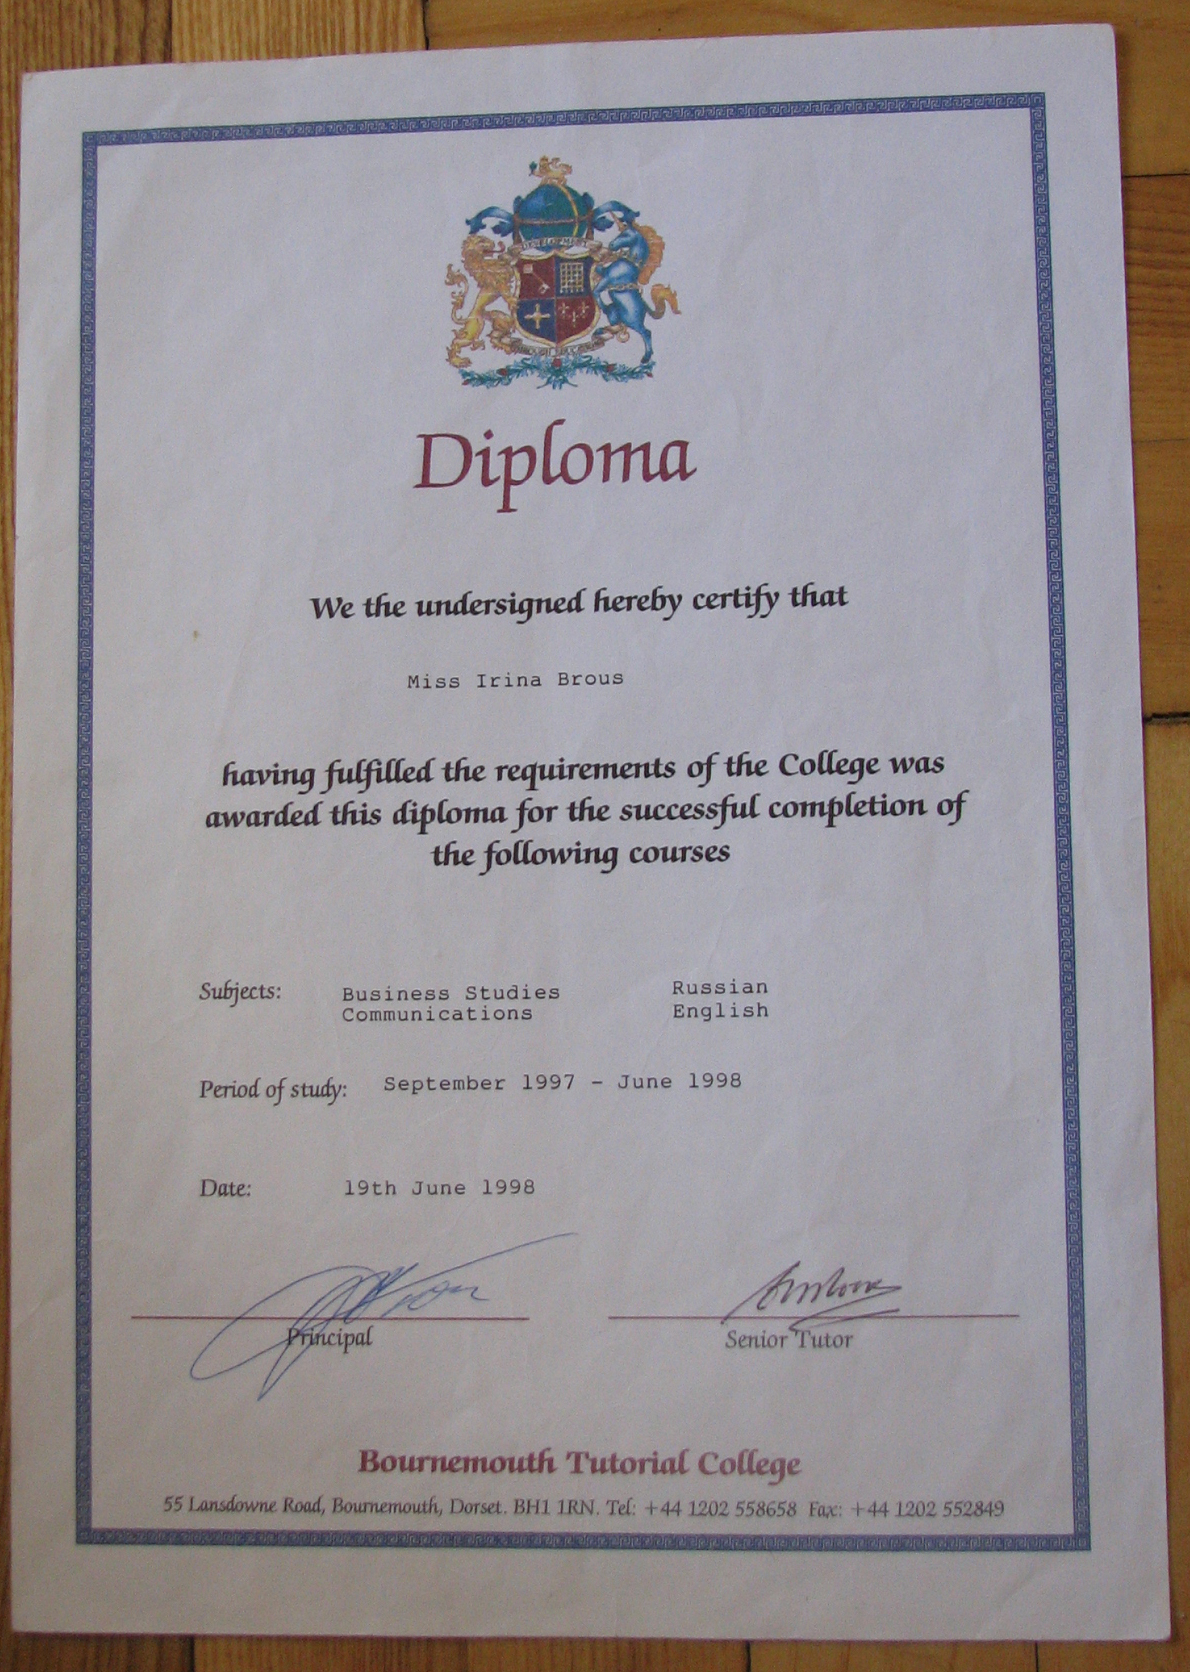 Bournemouth Tutorial College - Diploma